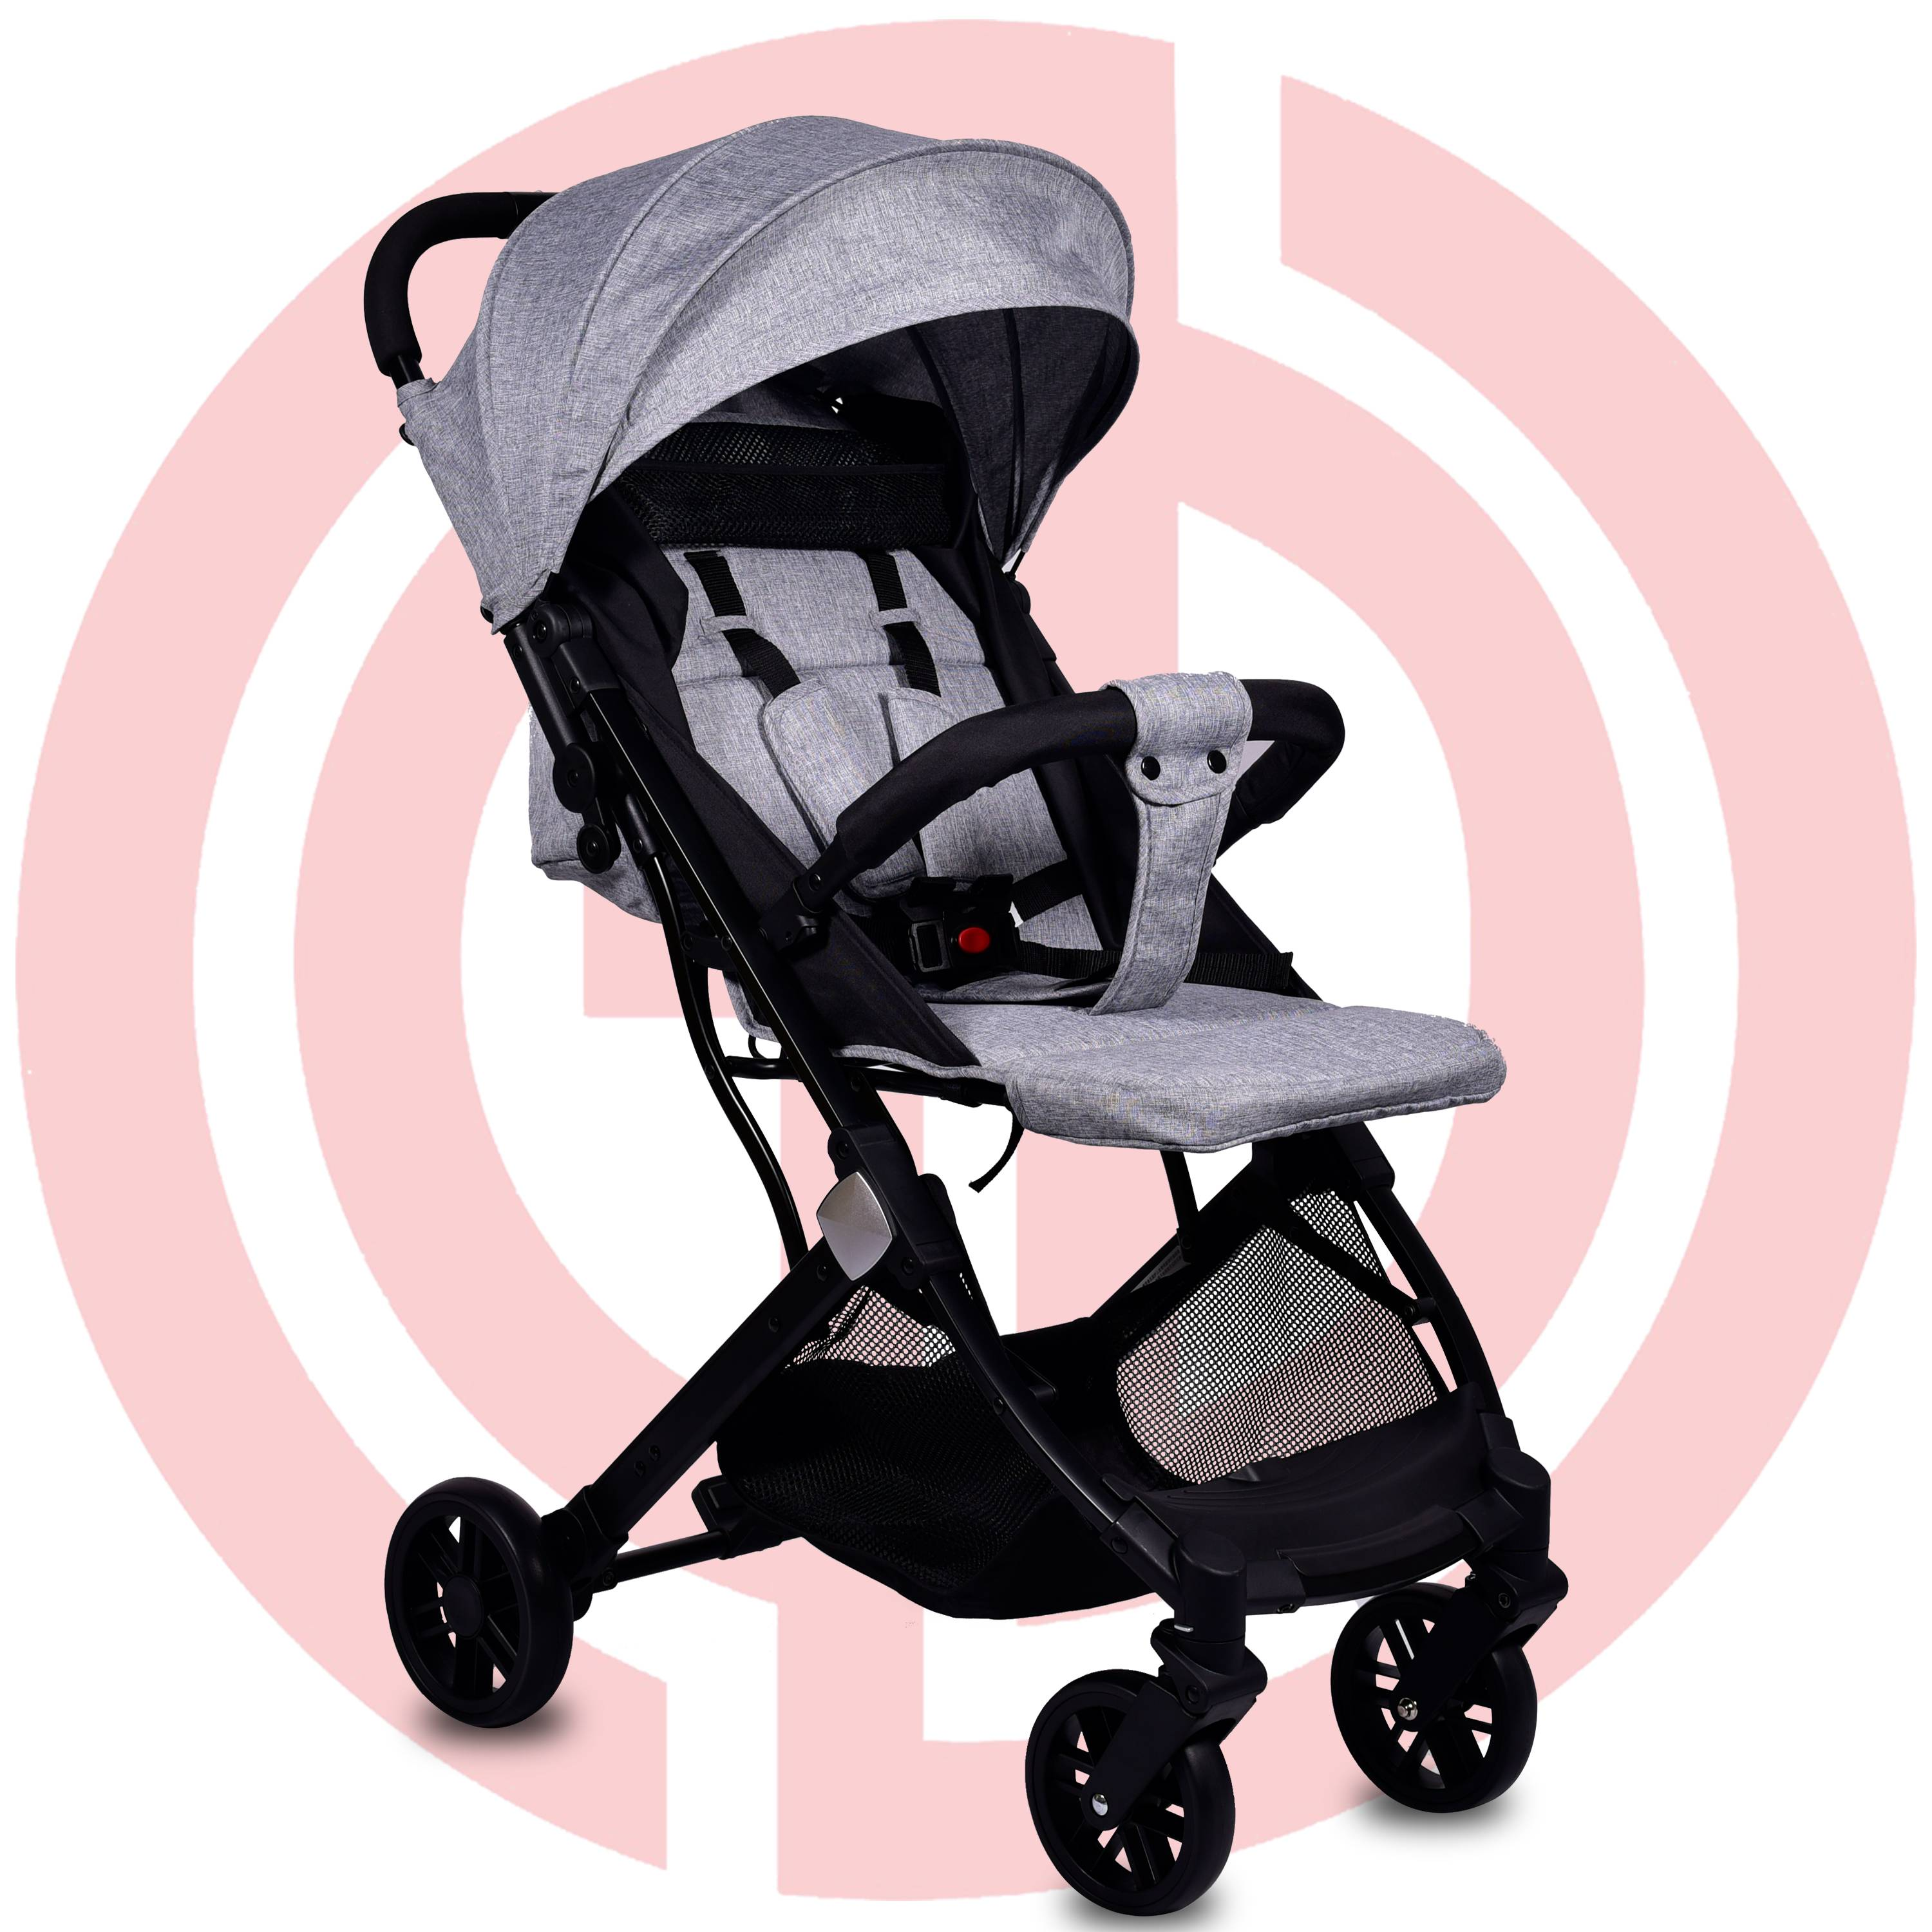 GD-KB-S002: Baby stroller, light stroller, stroller for baby, comfartable strolller for baby, safe baby stroller